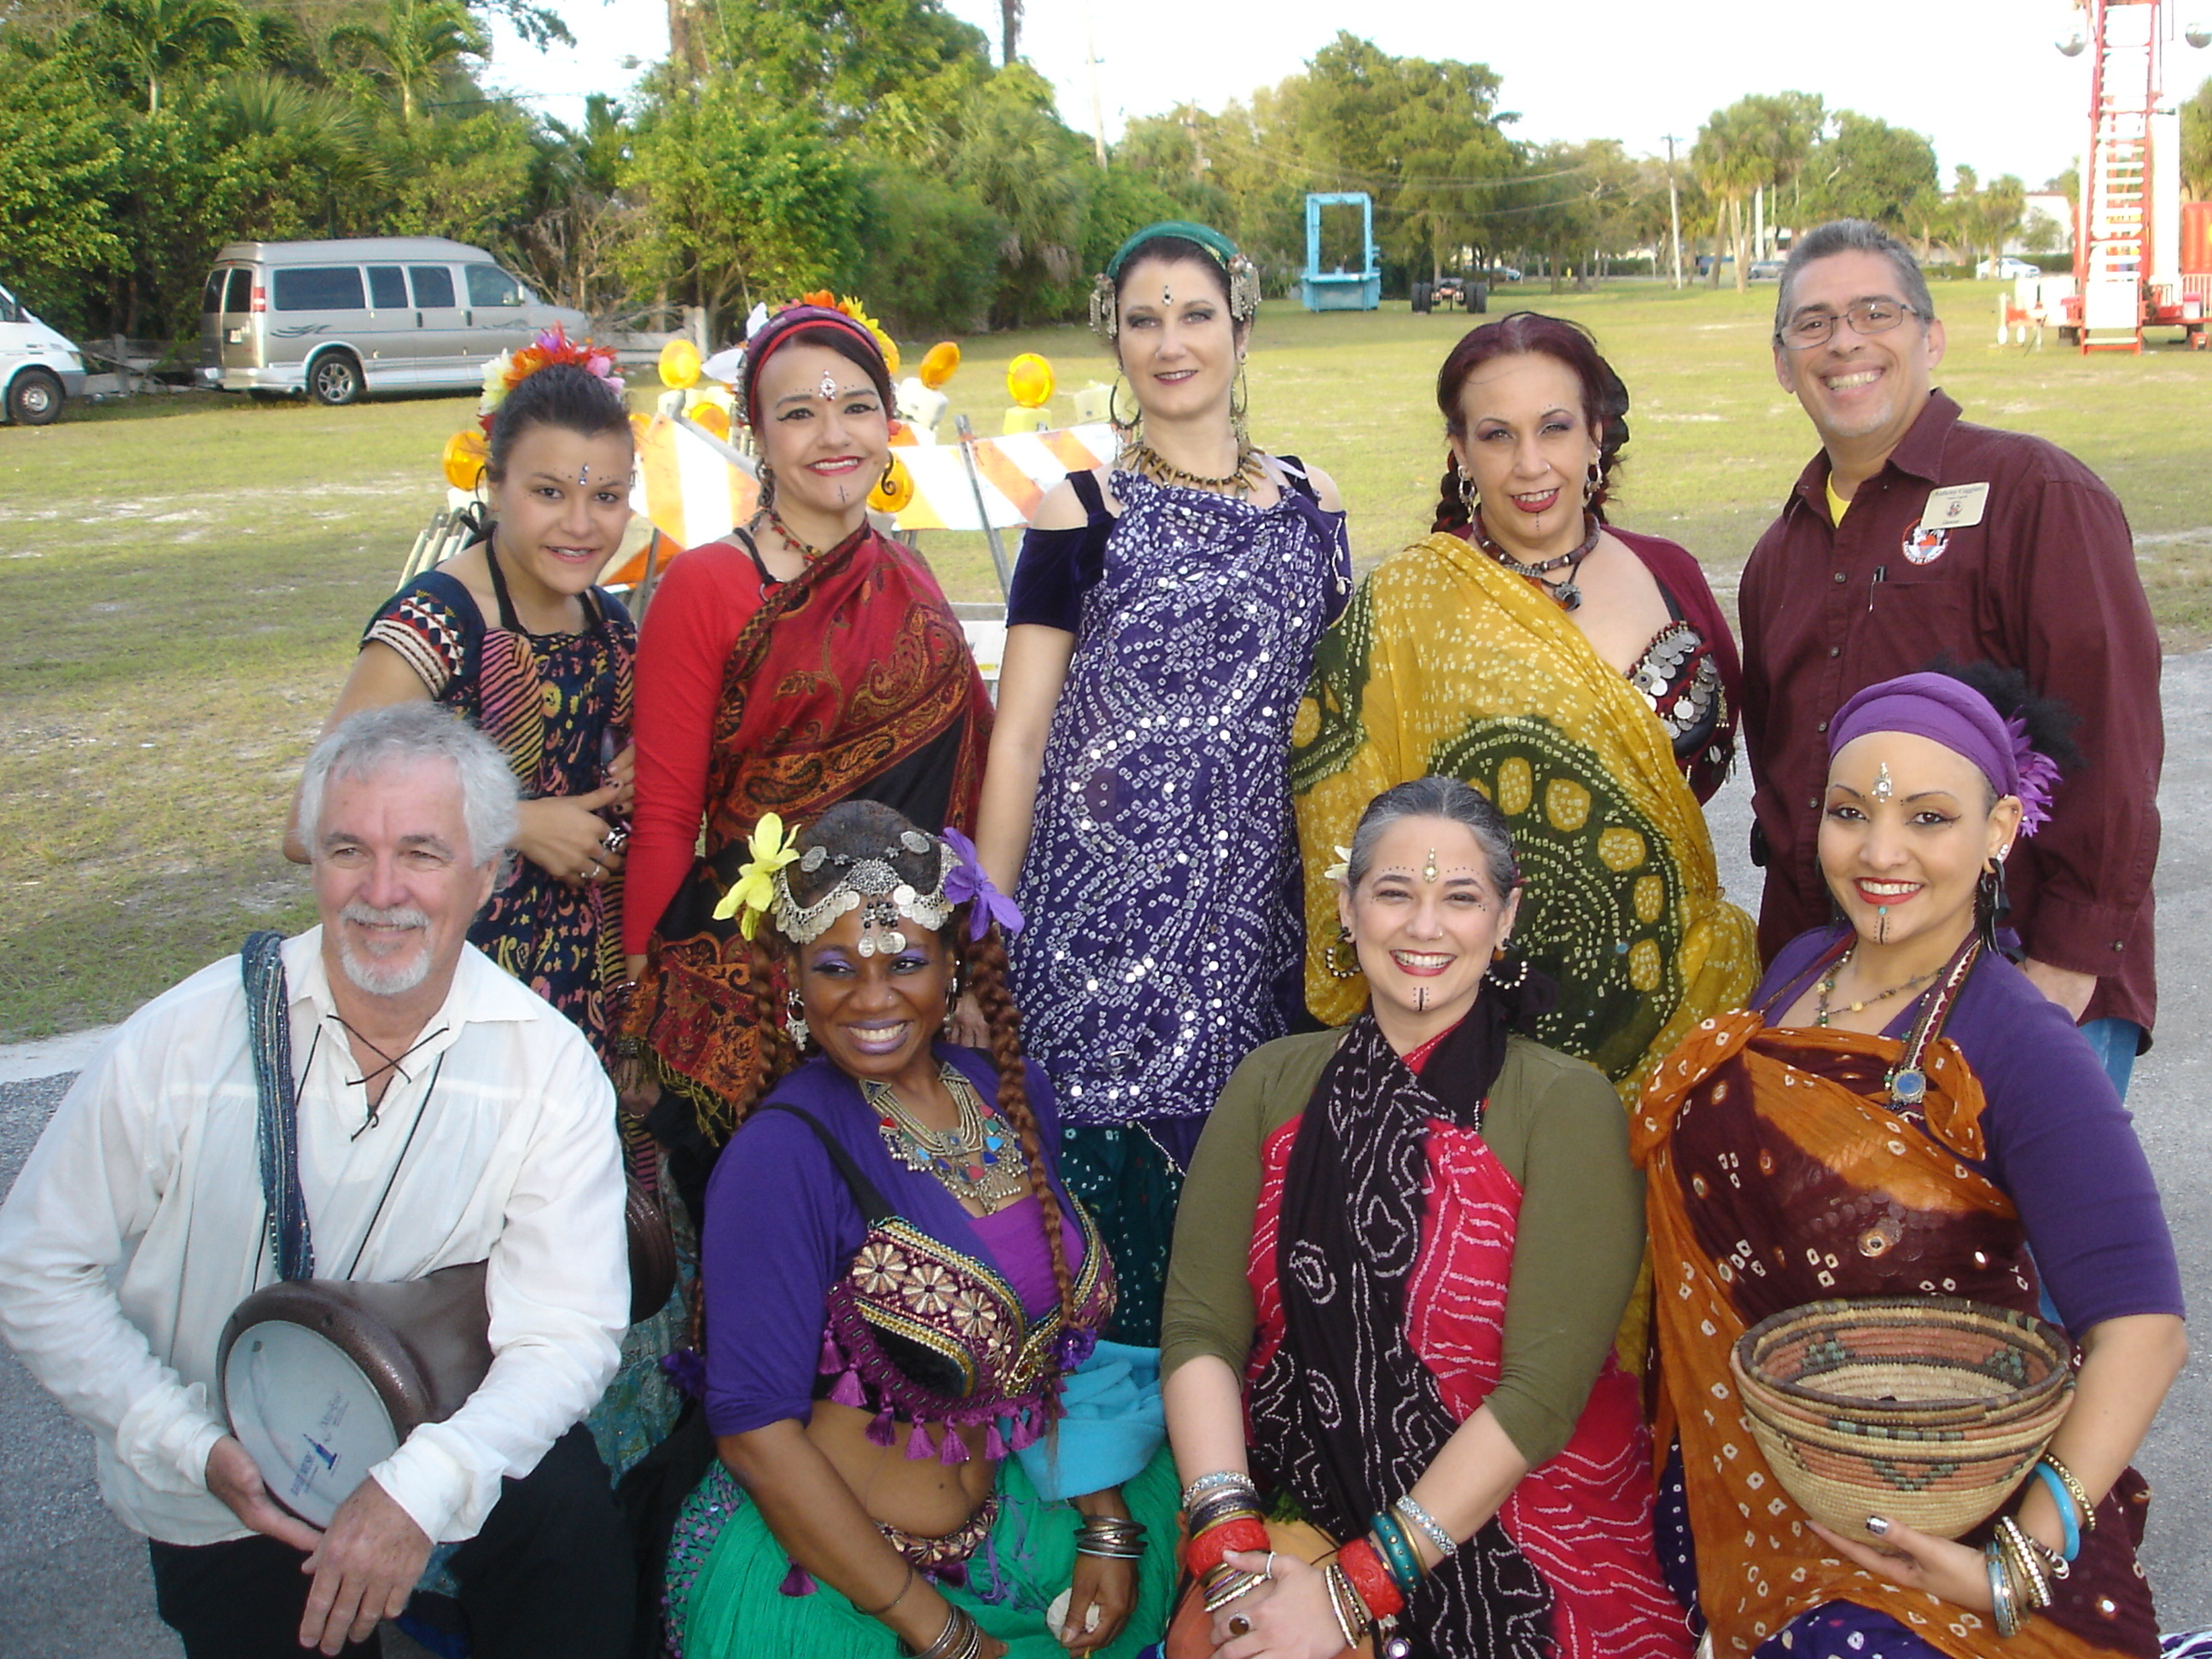 With a Middle Eastern Dance Troupe